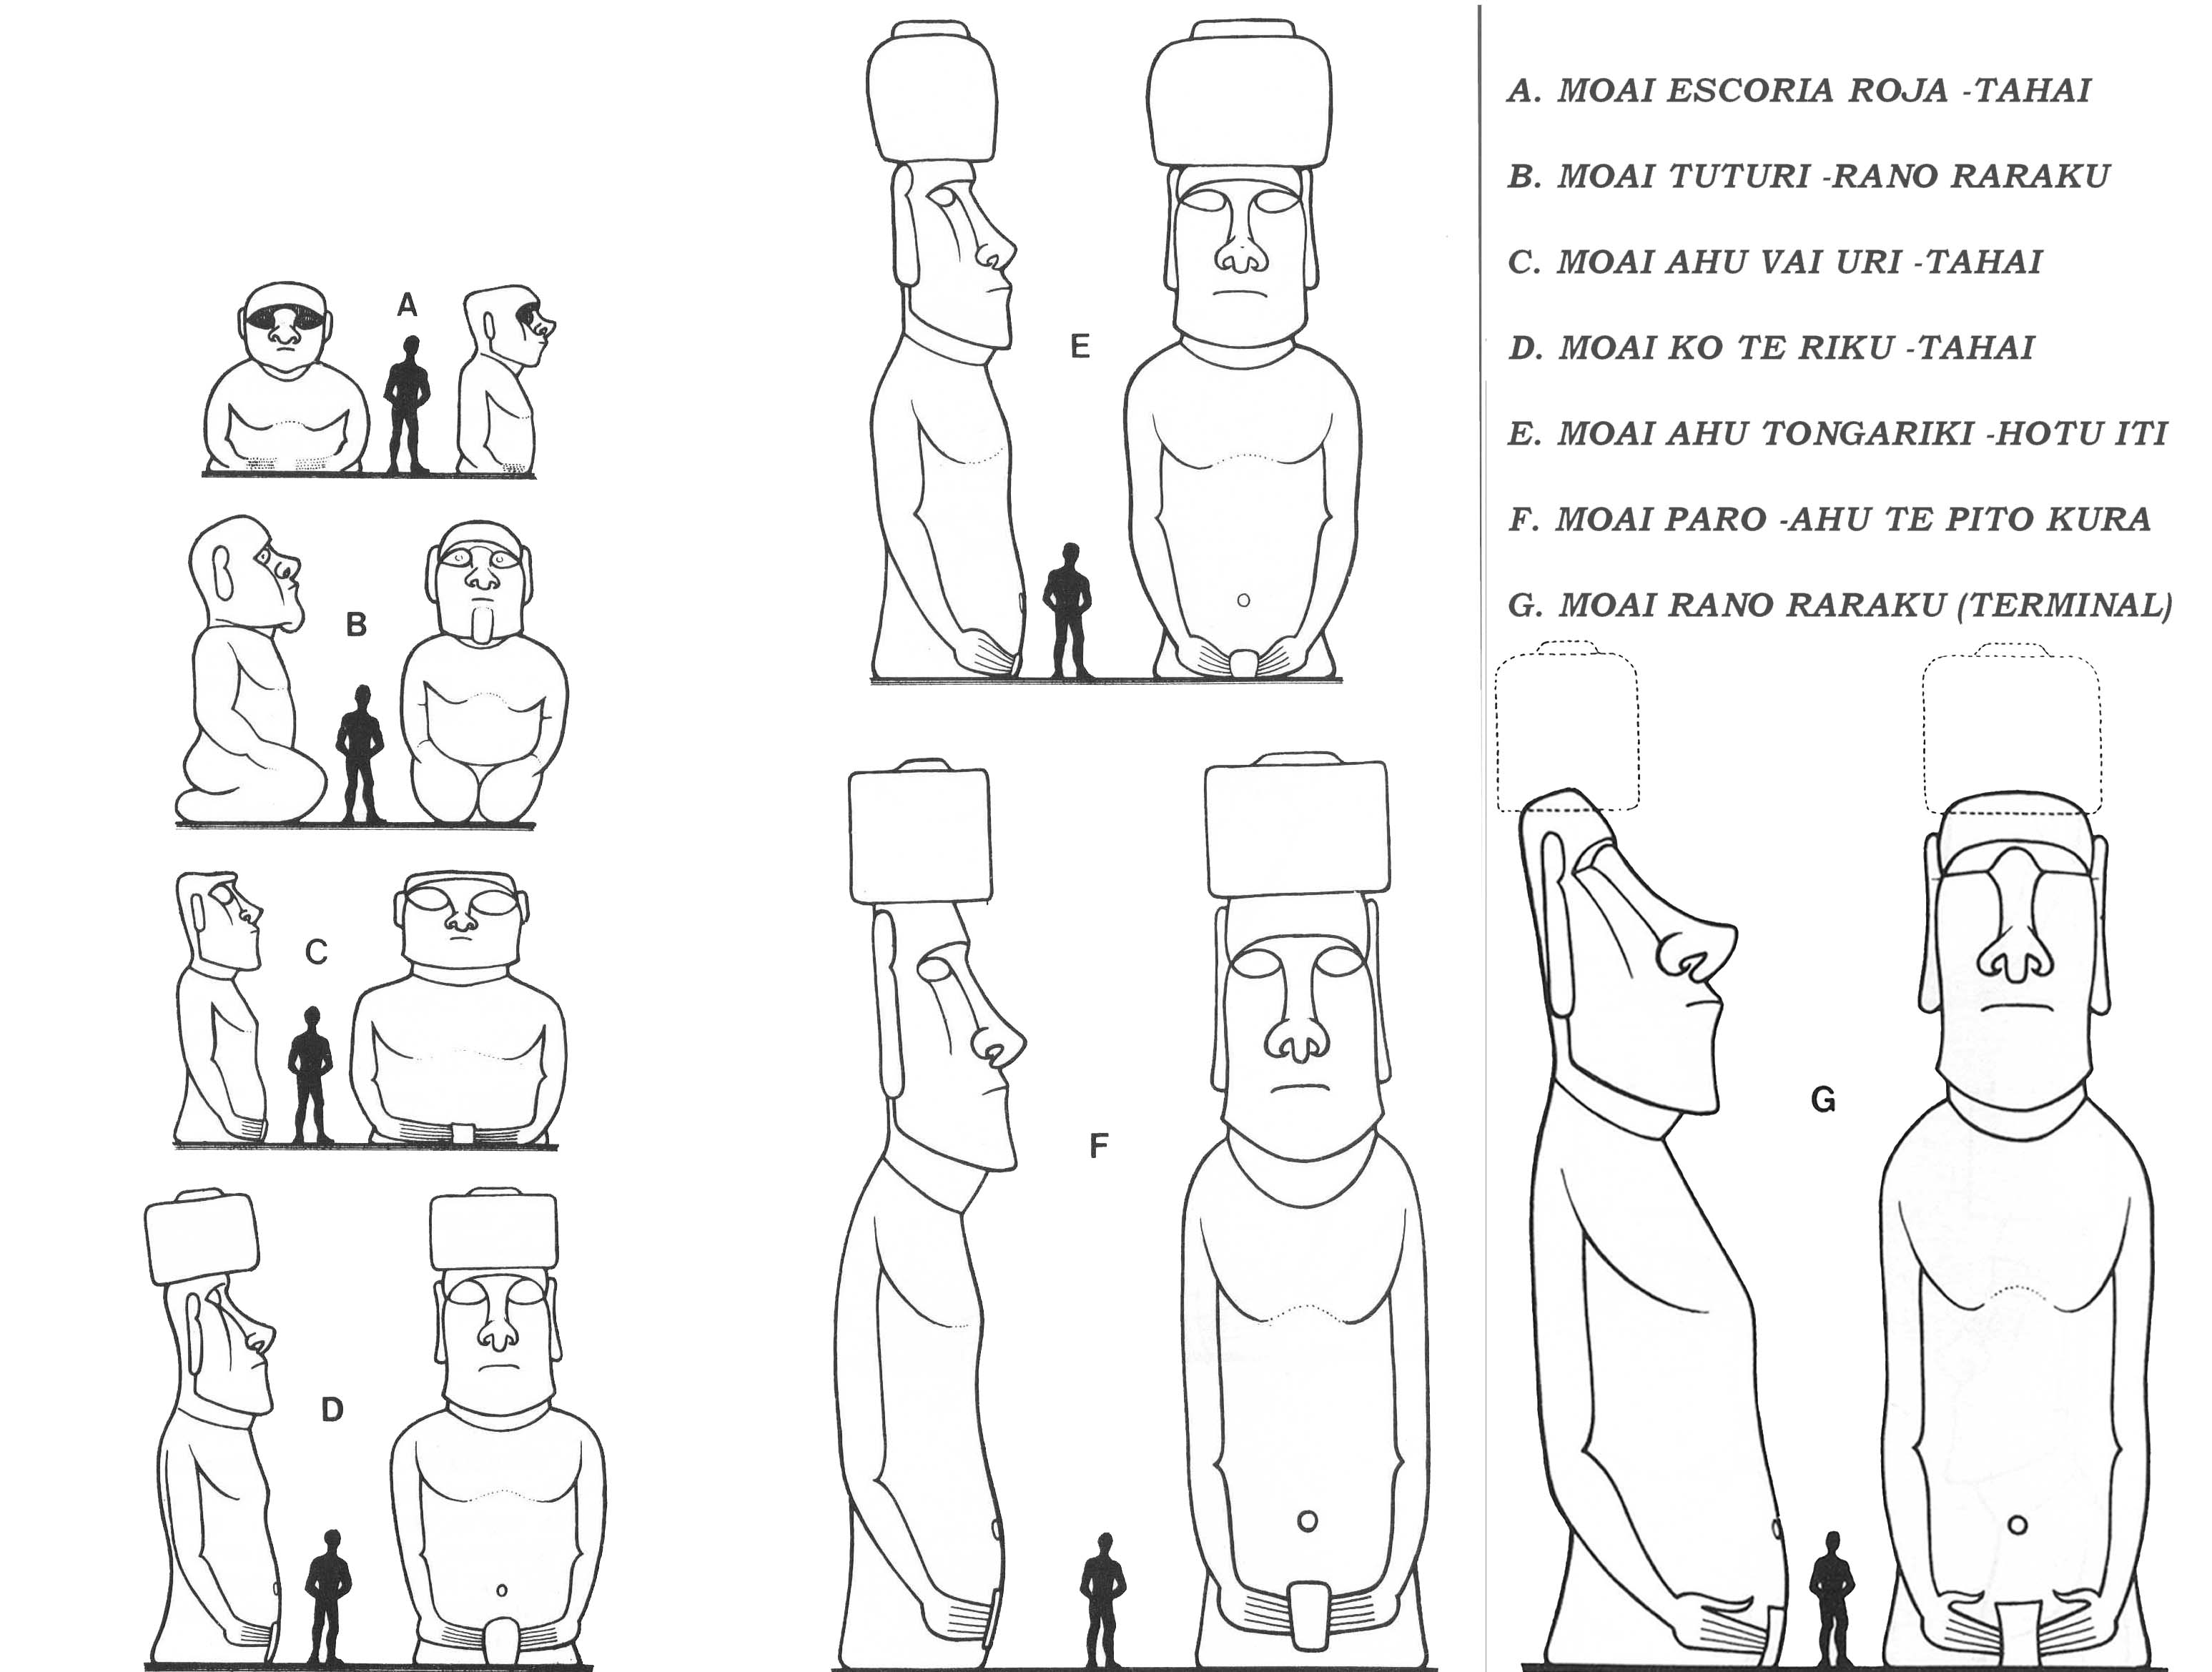 Mary Mactavish - Google+ - Easter Island heads have bodies Absolutely ...